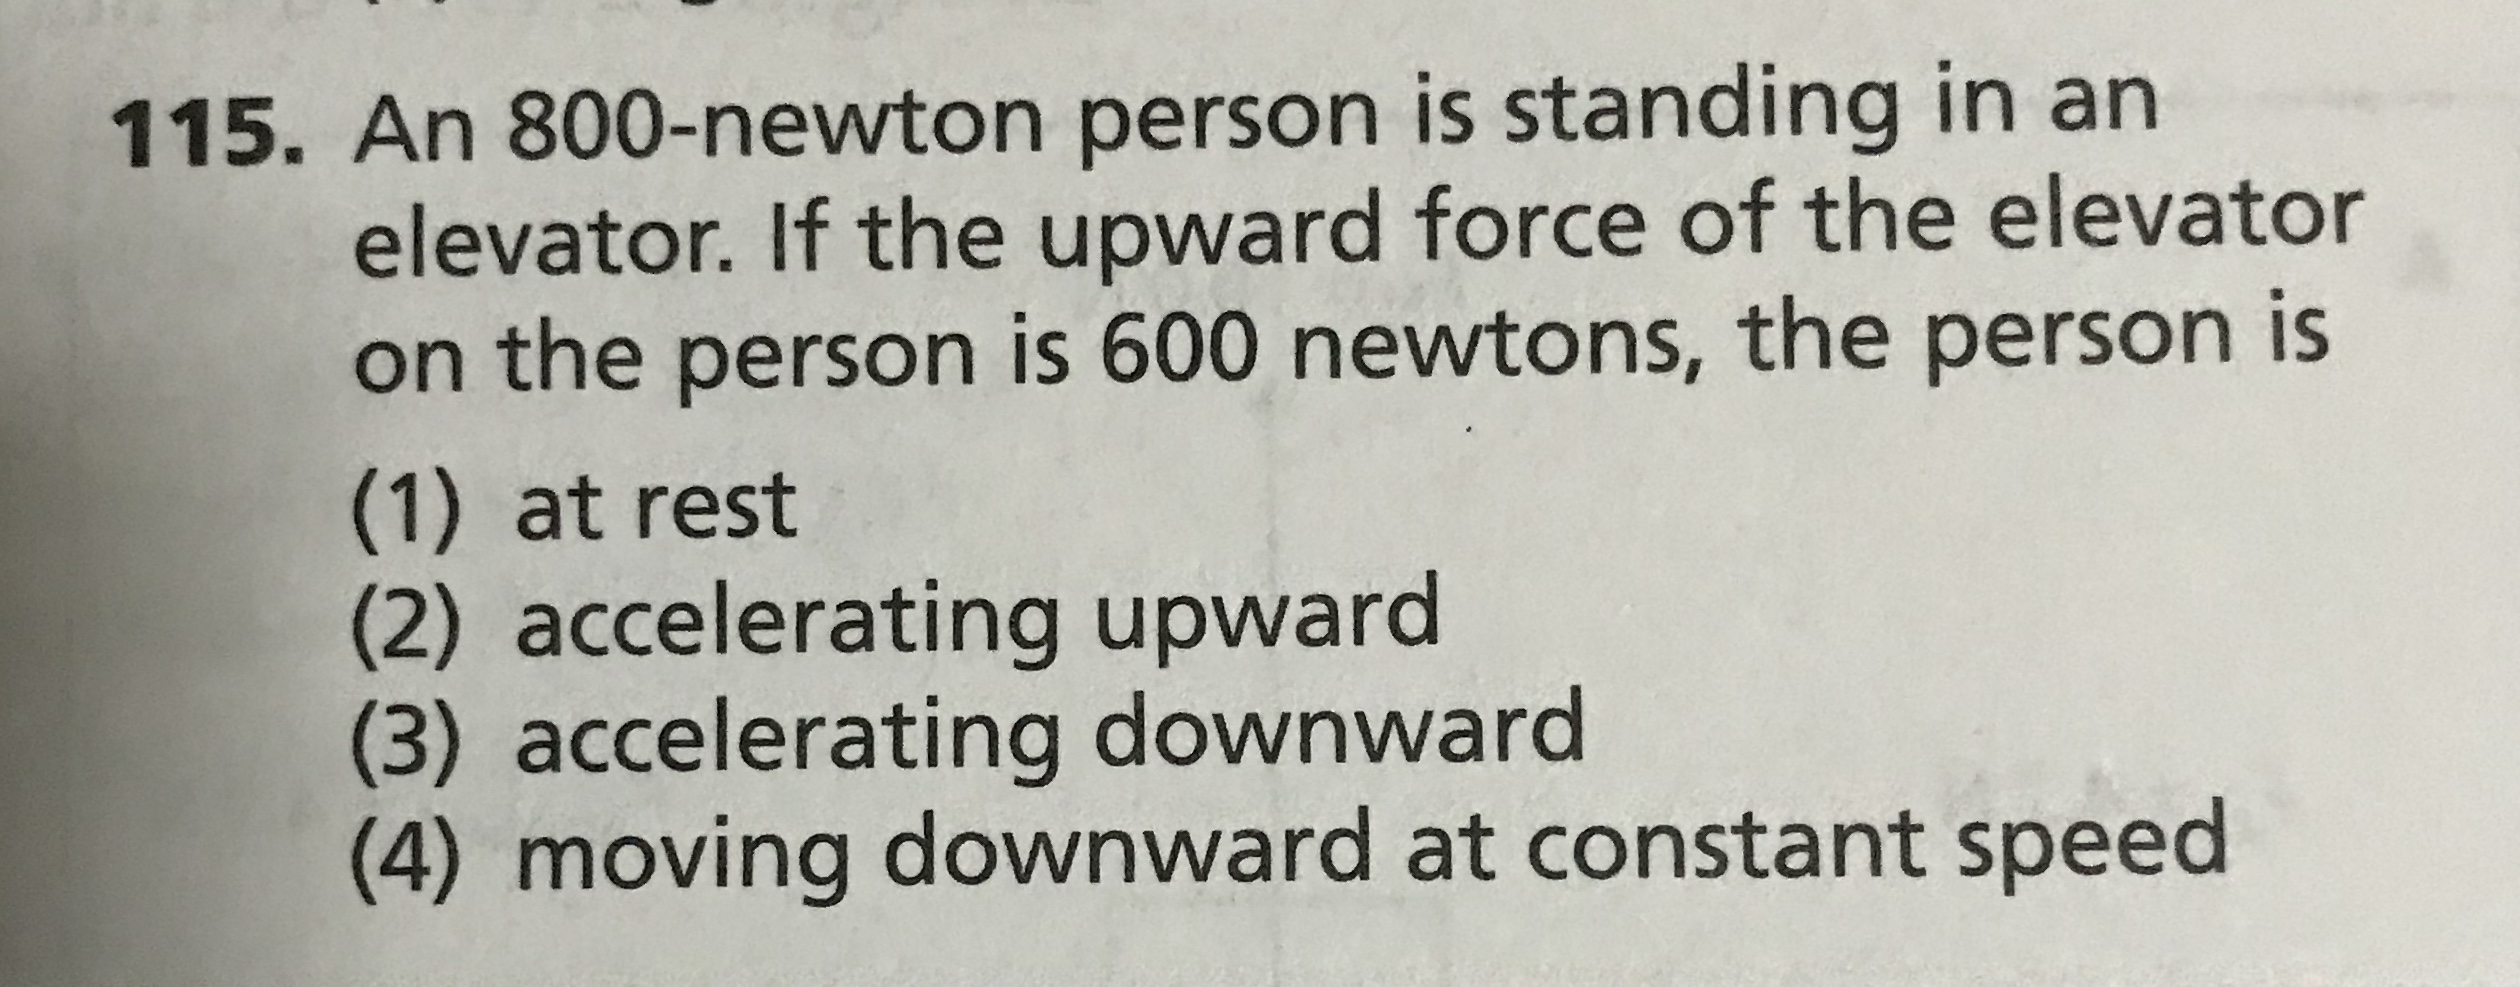 115. An 800-newton person is standing in an elevator. If the upward force of the elevator on the person is 600 newtons, the person is (1) at rest accelerating upward (3) accelerating downward (4) moving downward at constant speed